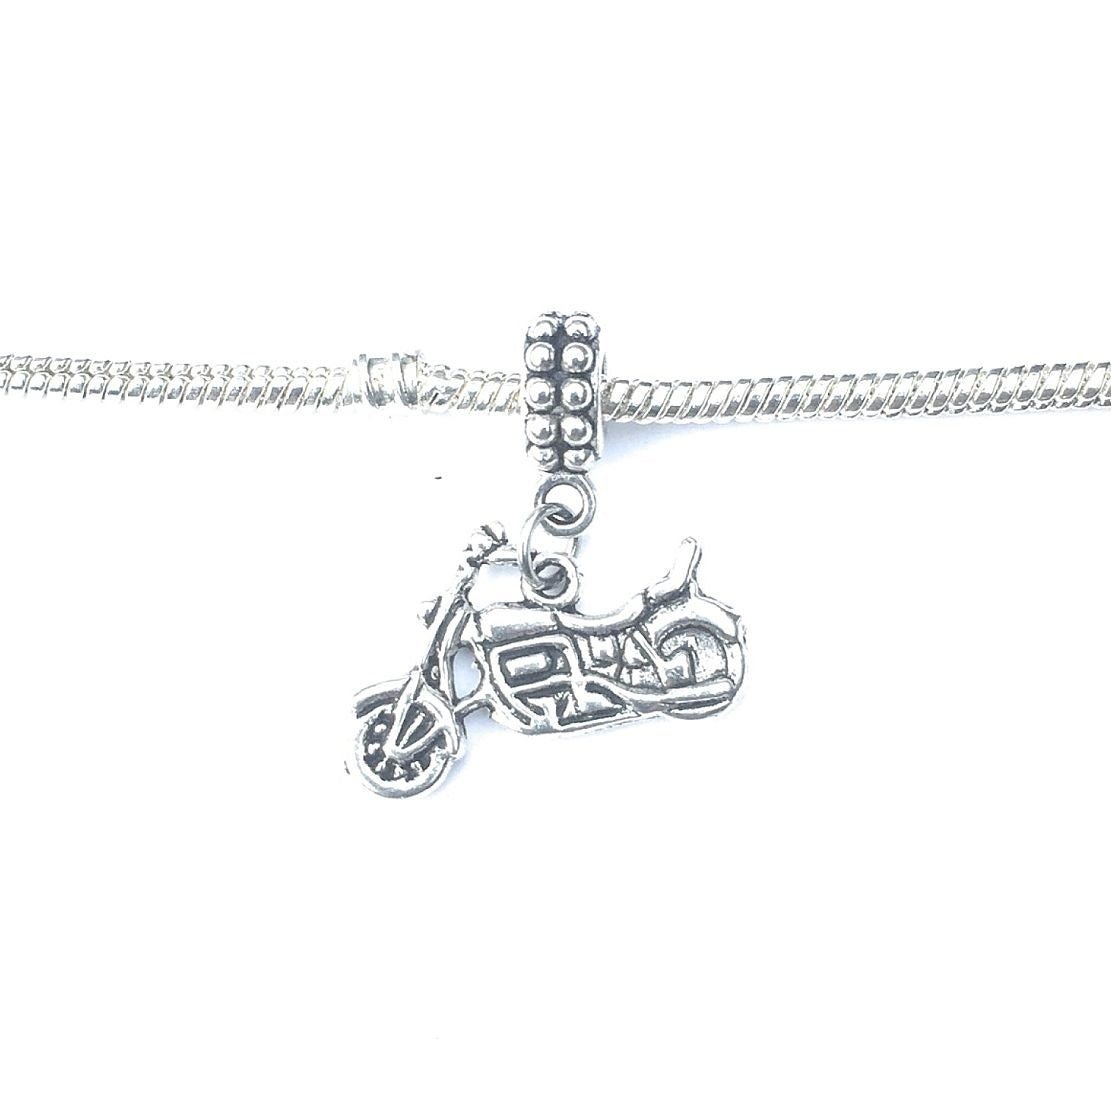 Handcrafted Silver Motorcycle Charm Bead for Bracelet.